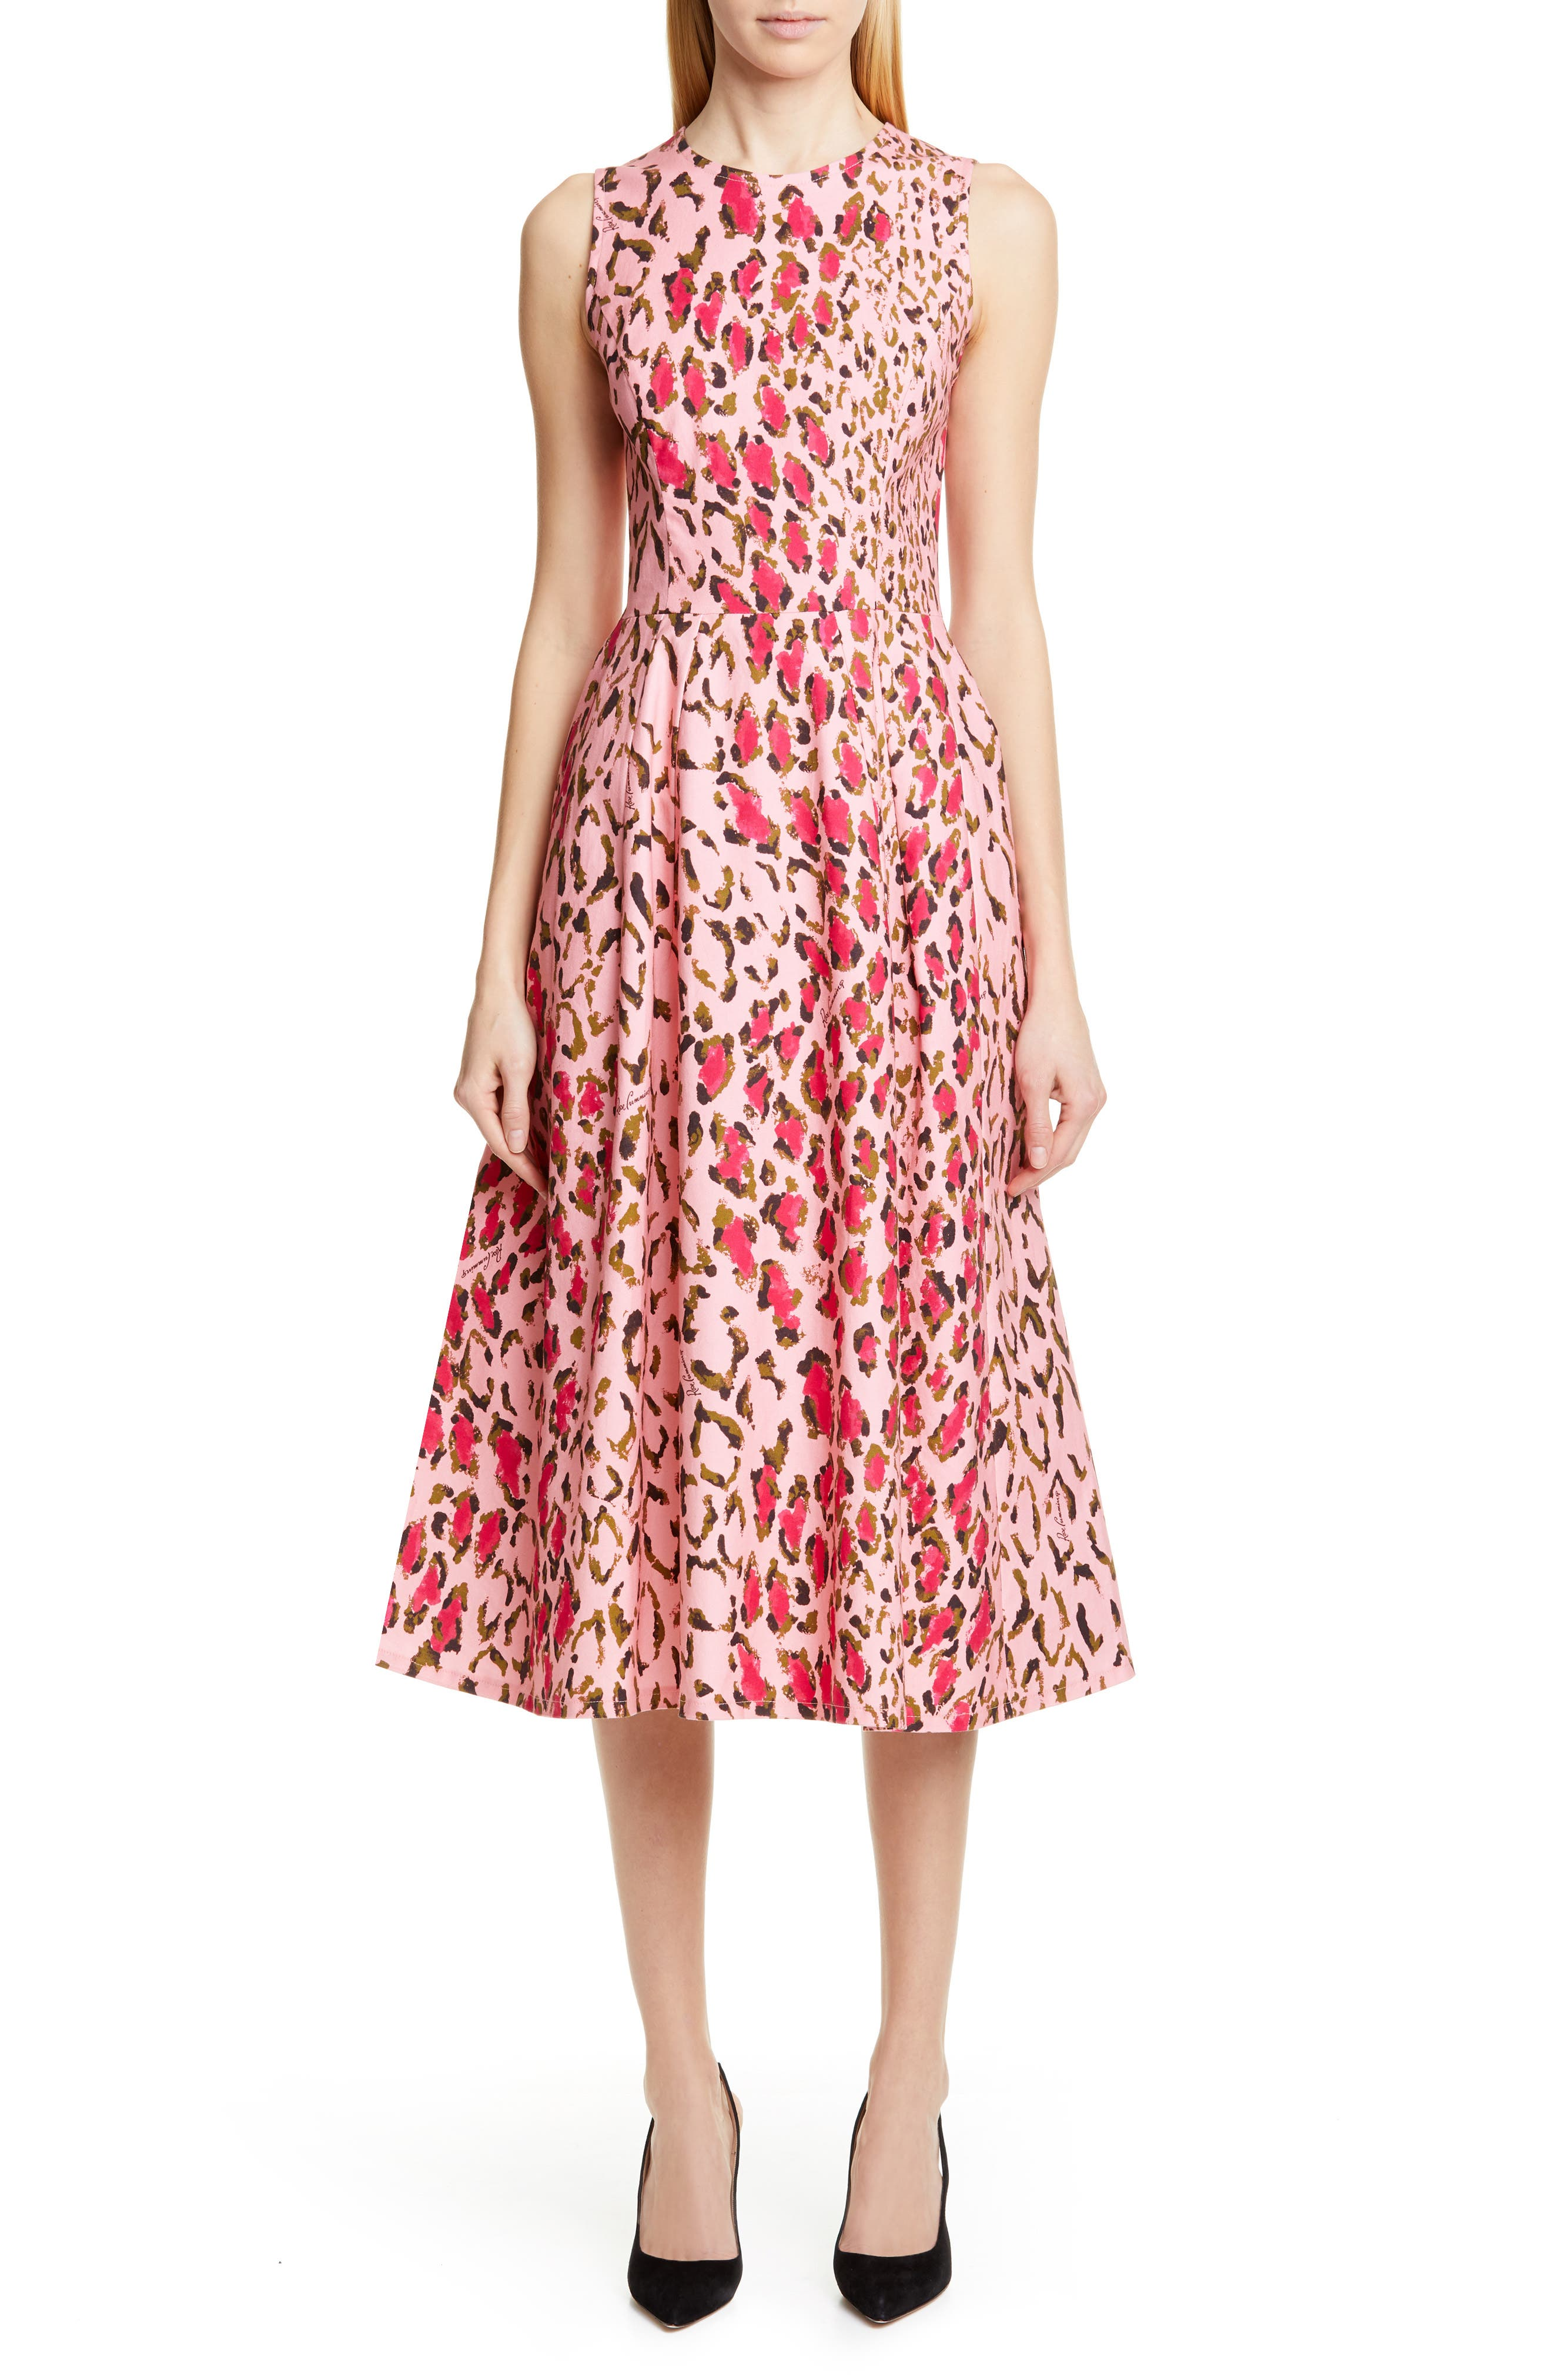 Carolina Herrera Leopard A-Line Midi Dress, Pink